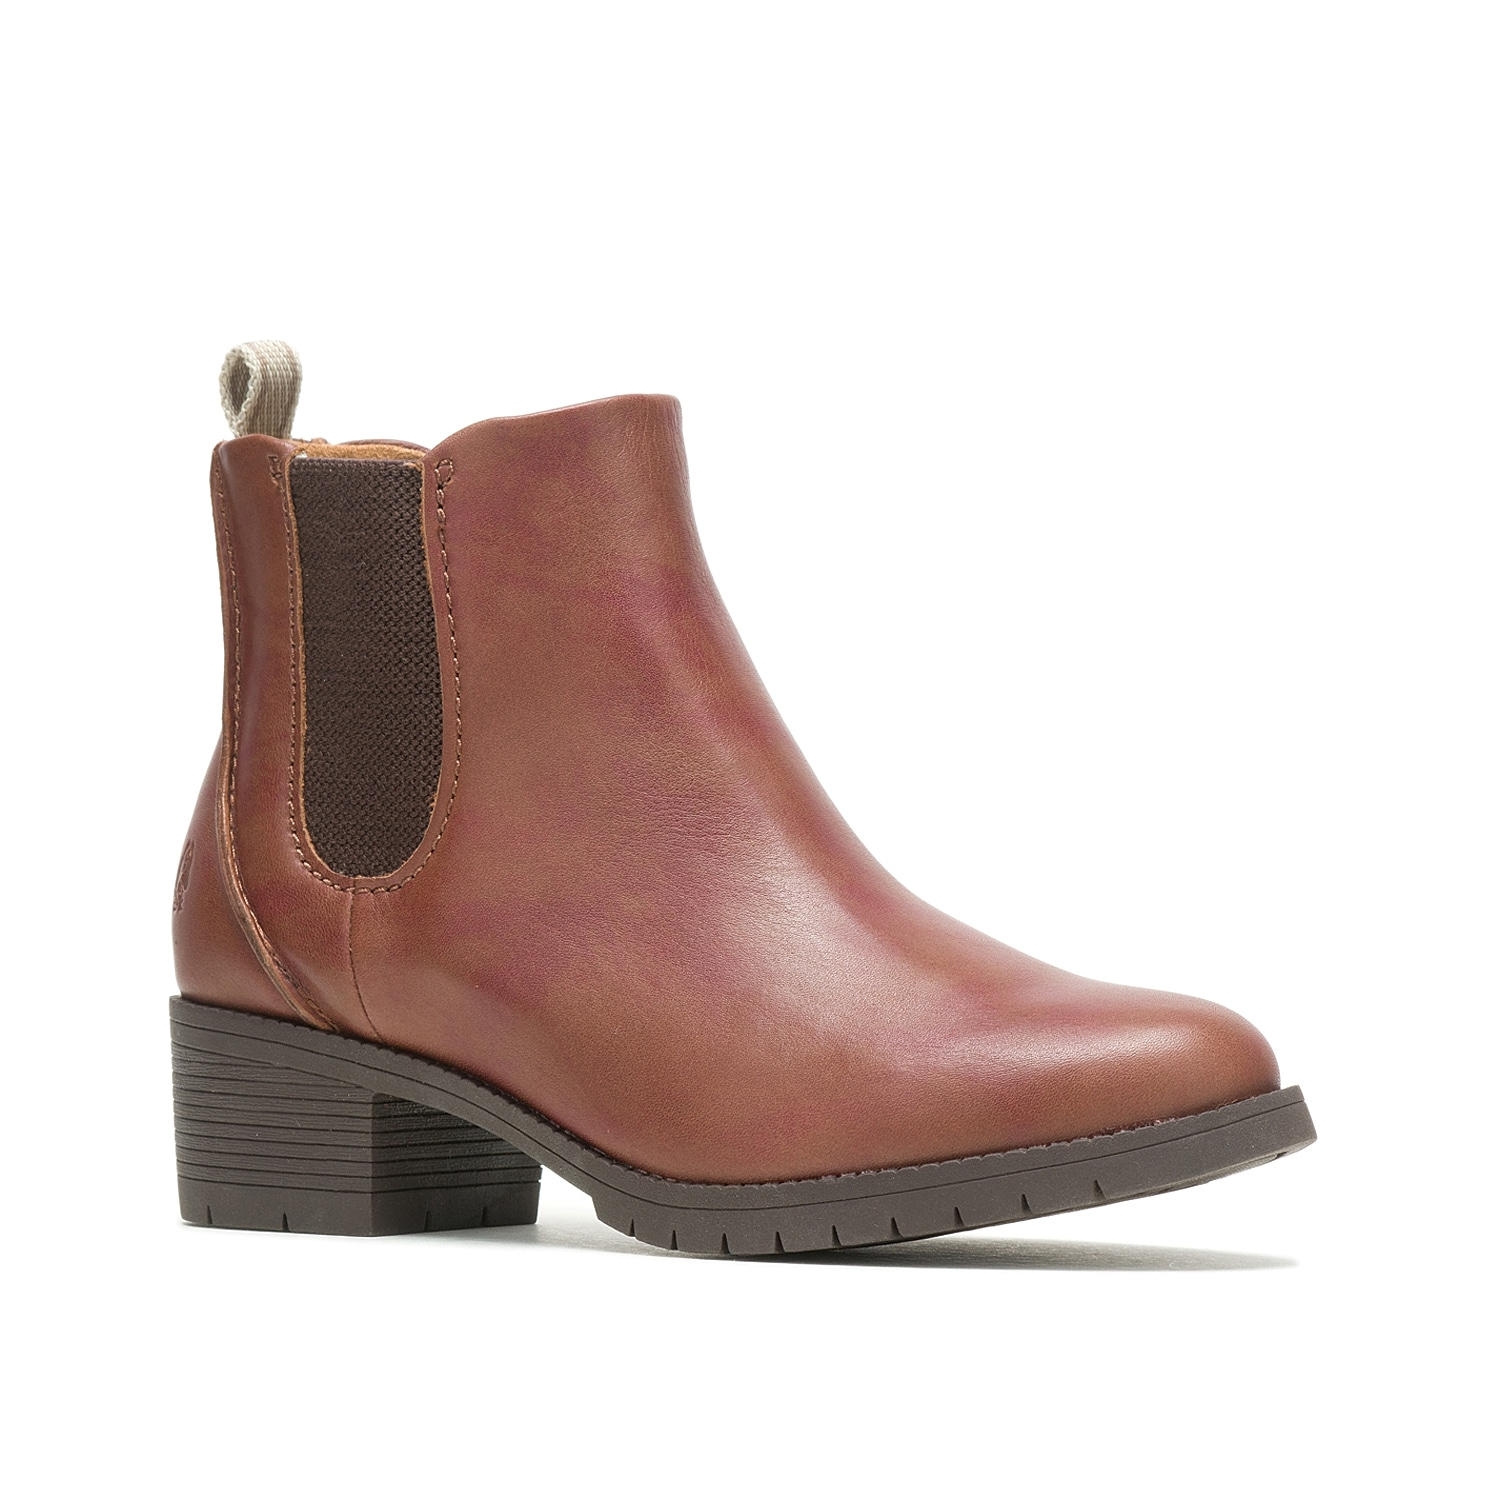 Show off classic cool weather appeal with the Hadley Chelsea boot from Hush Puppies. This water-resistant ankle boot features a Bounce® cushioned footbed and Rpet recycled lining for sustainable comfort.Click here for Boot Measuring Guide.